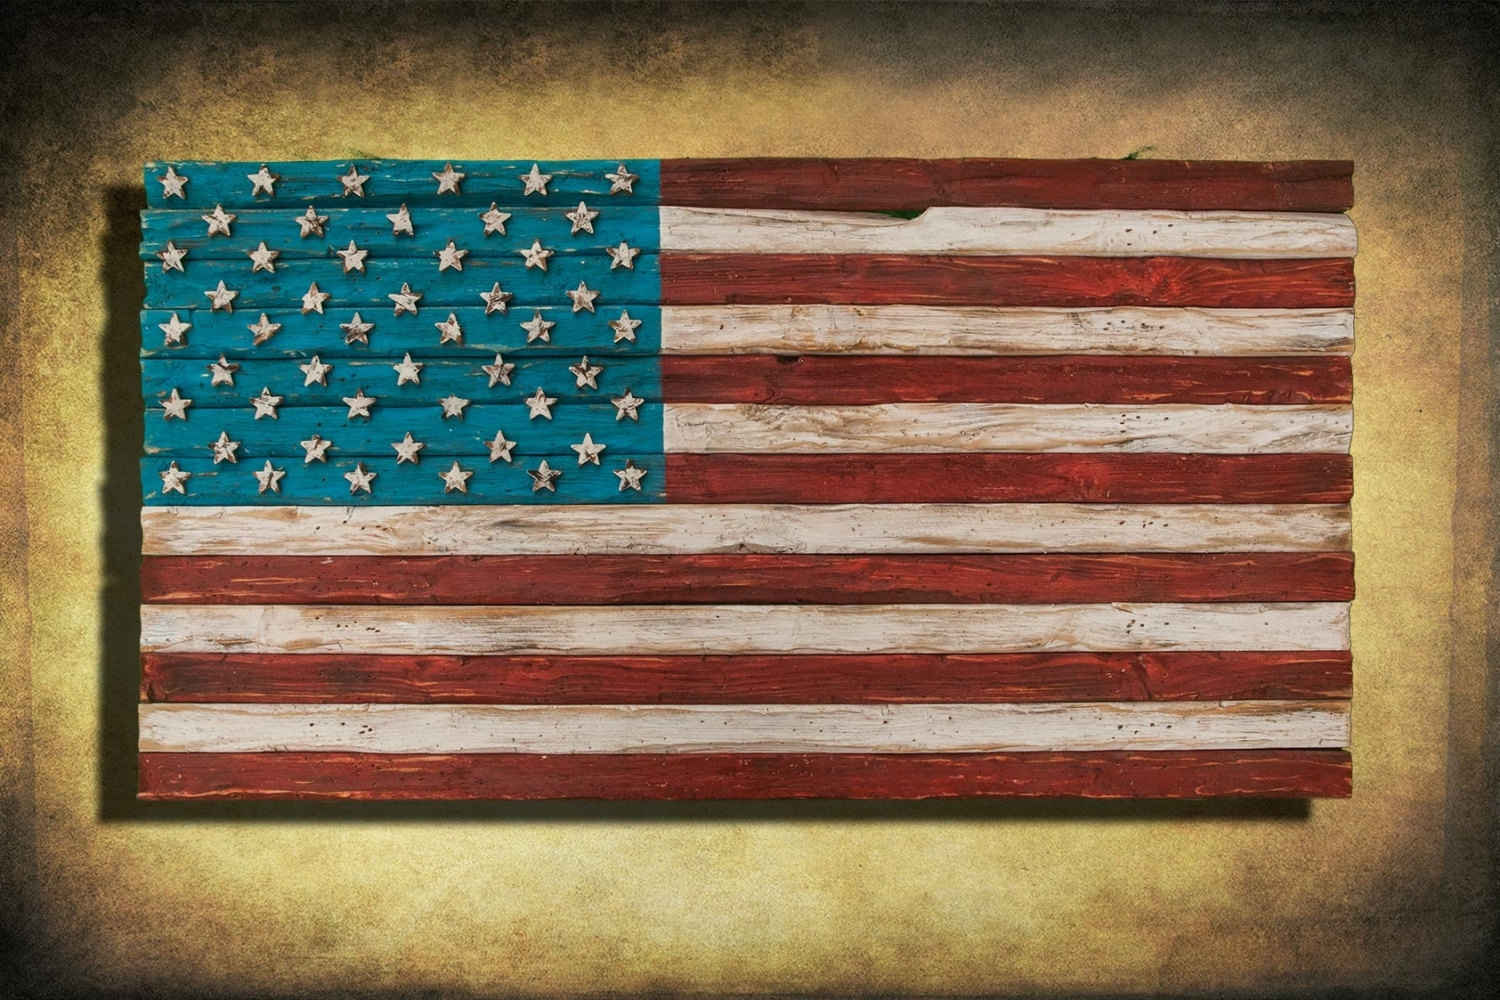 American Flag, Weathered Wood, One Of A Kind, 3D, Wooden, Vintage With Regard To Latest Vintage American Flag Wall Art (View 5 of 20)